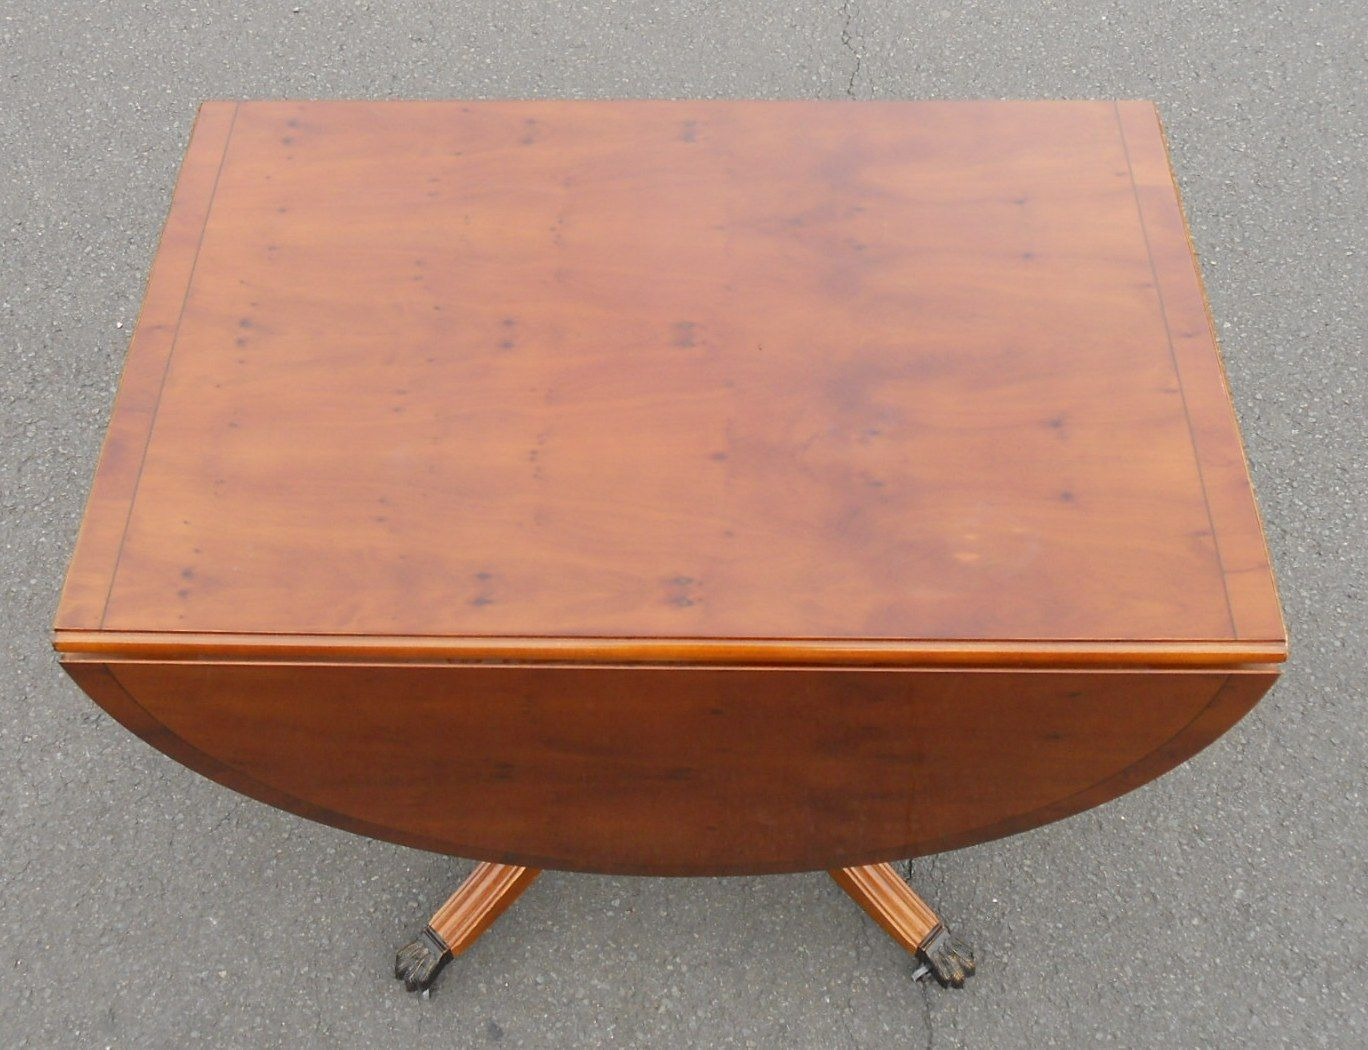 Yew Oval Dropleaf Dining Table